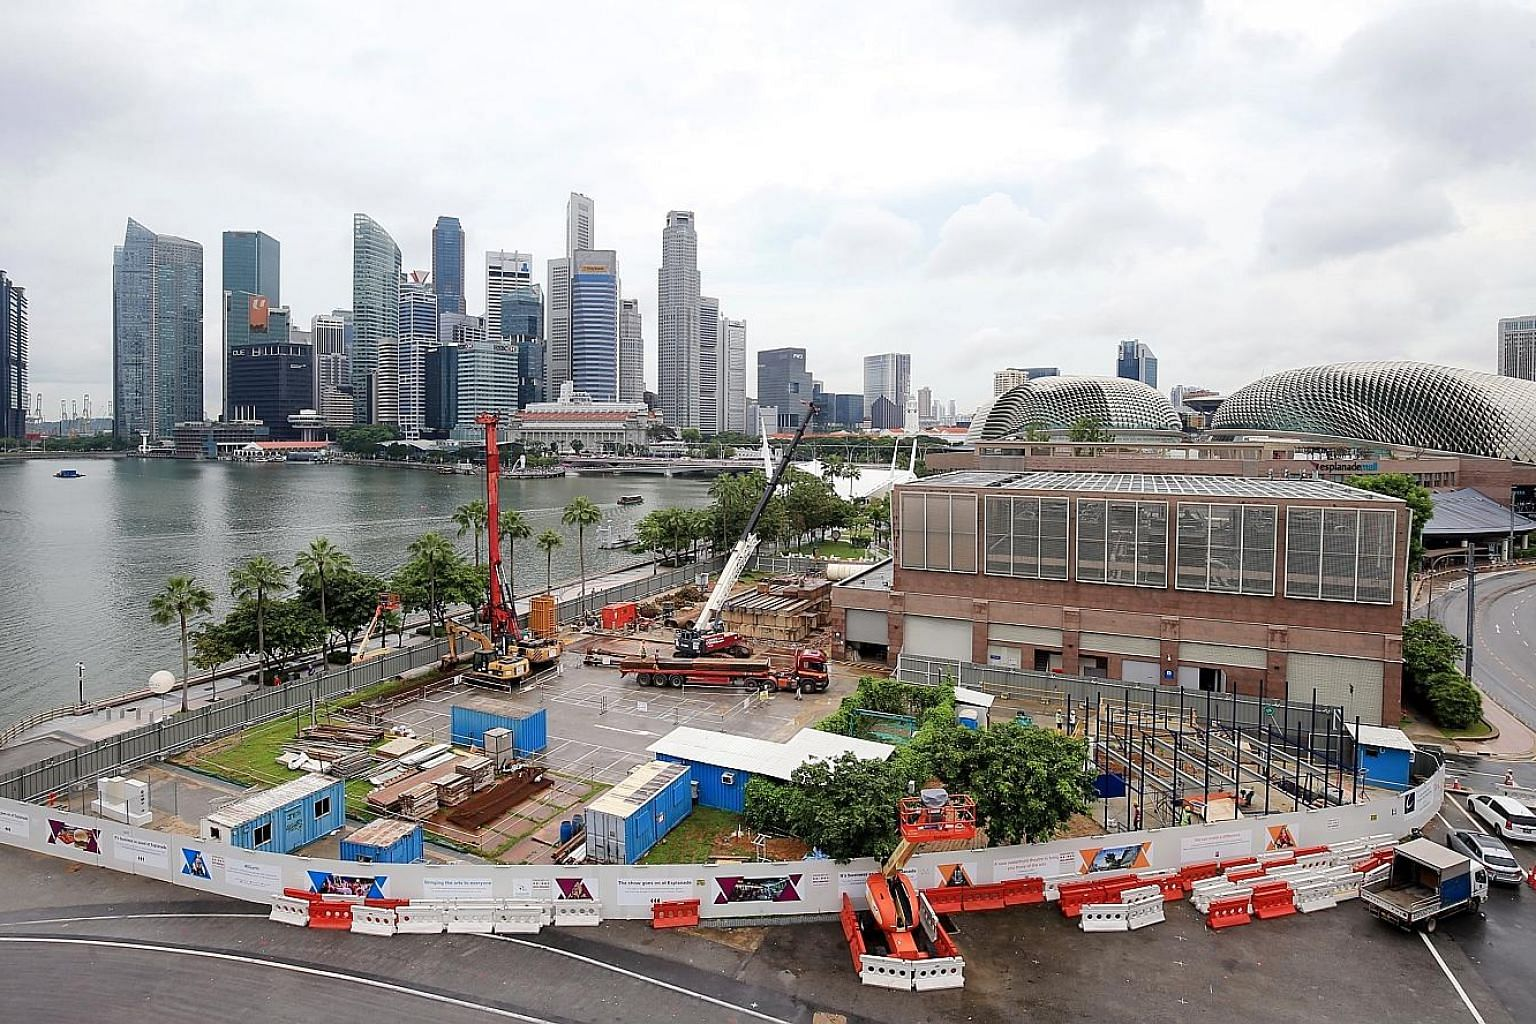 The 550-seat waterfront theatre is being constructed (left, with artist's impression on the right) in response to feedback about a gap in the arts landscape in Singapore. It will occupy a 3,000 sq m area along the waterfront. PHOTOS: LIANHE ZAOBAO